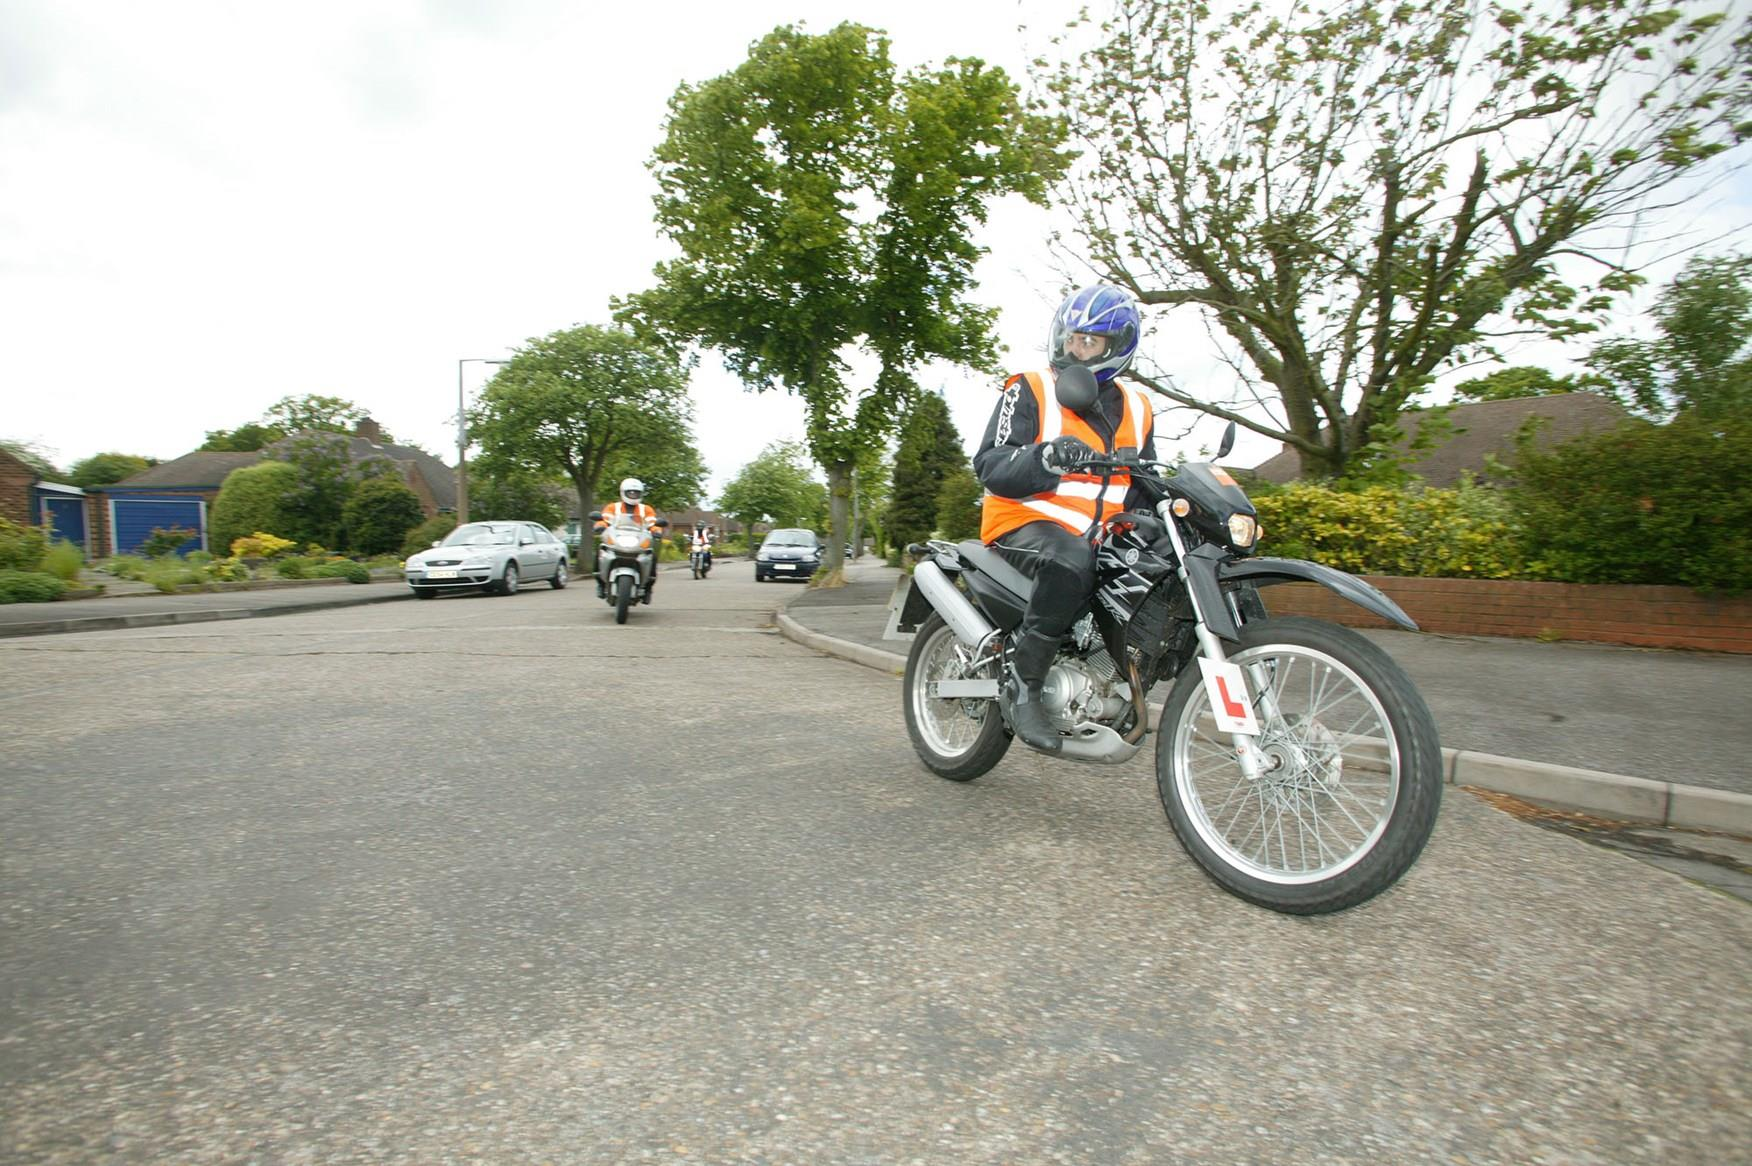 Part of the module 2 motorcycle test involves on-road riding